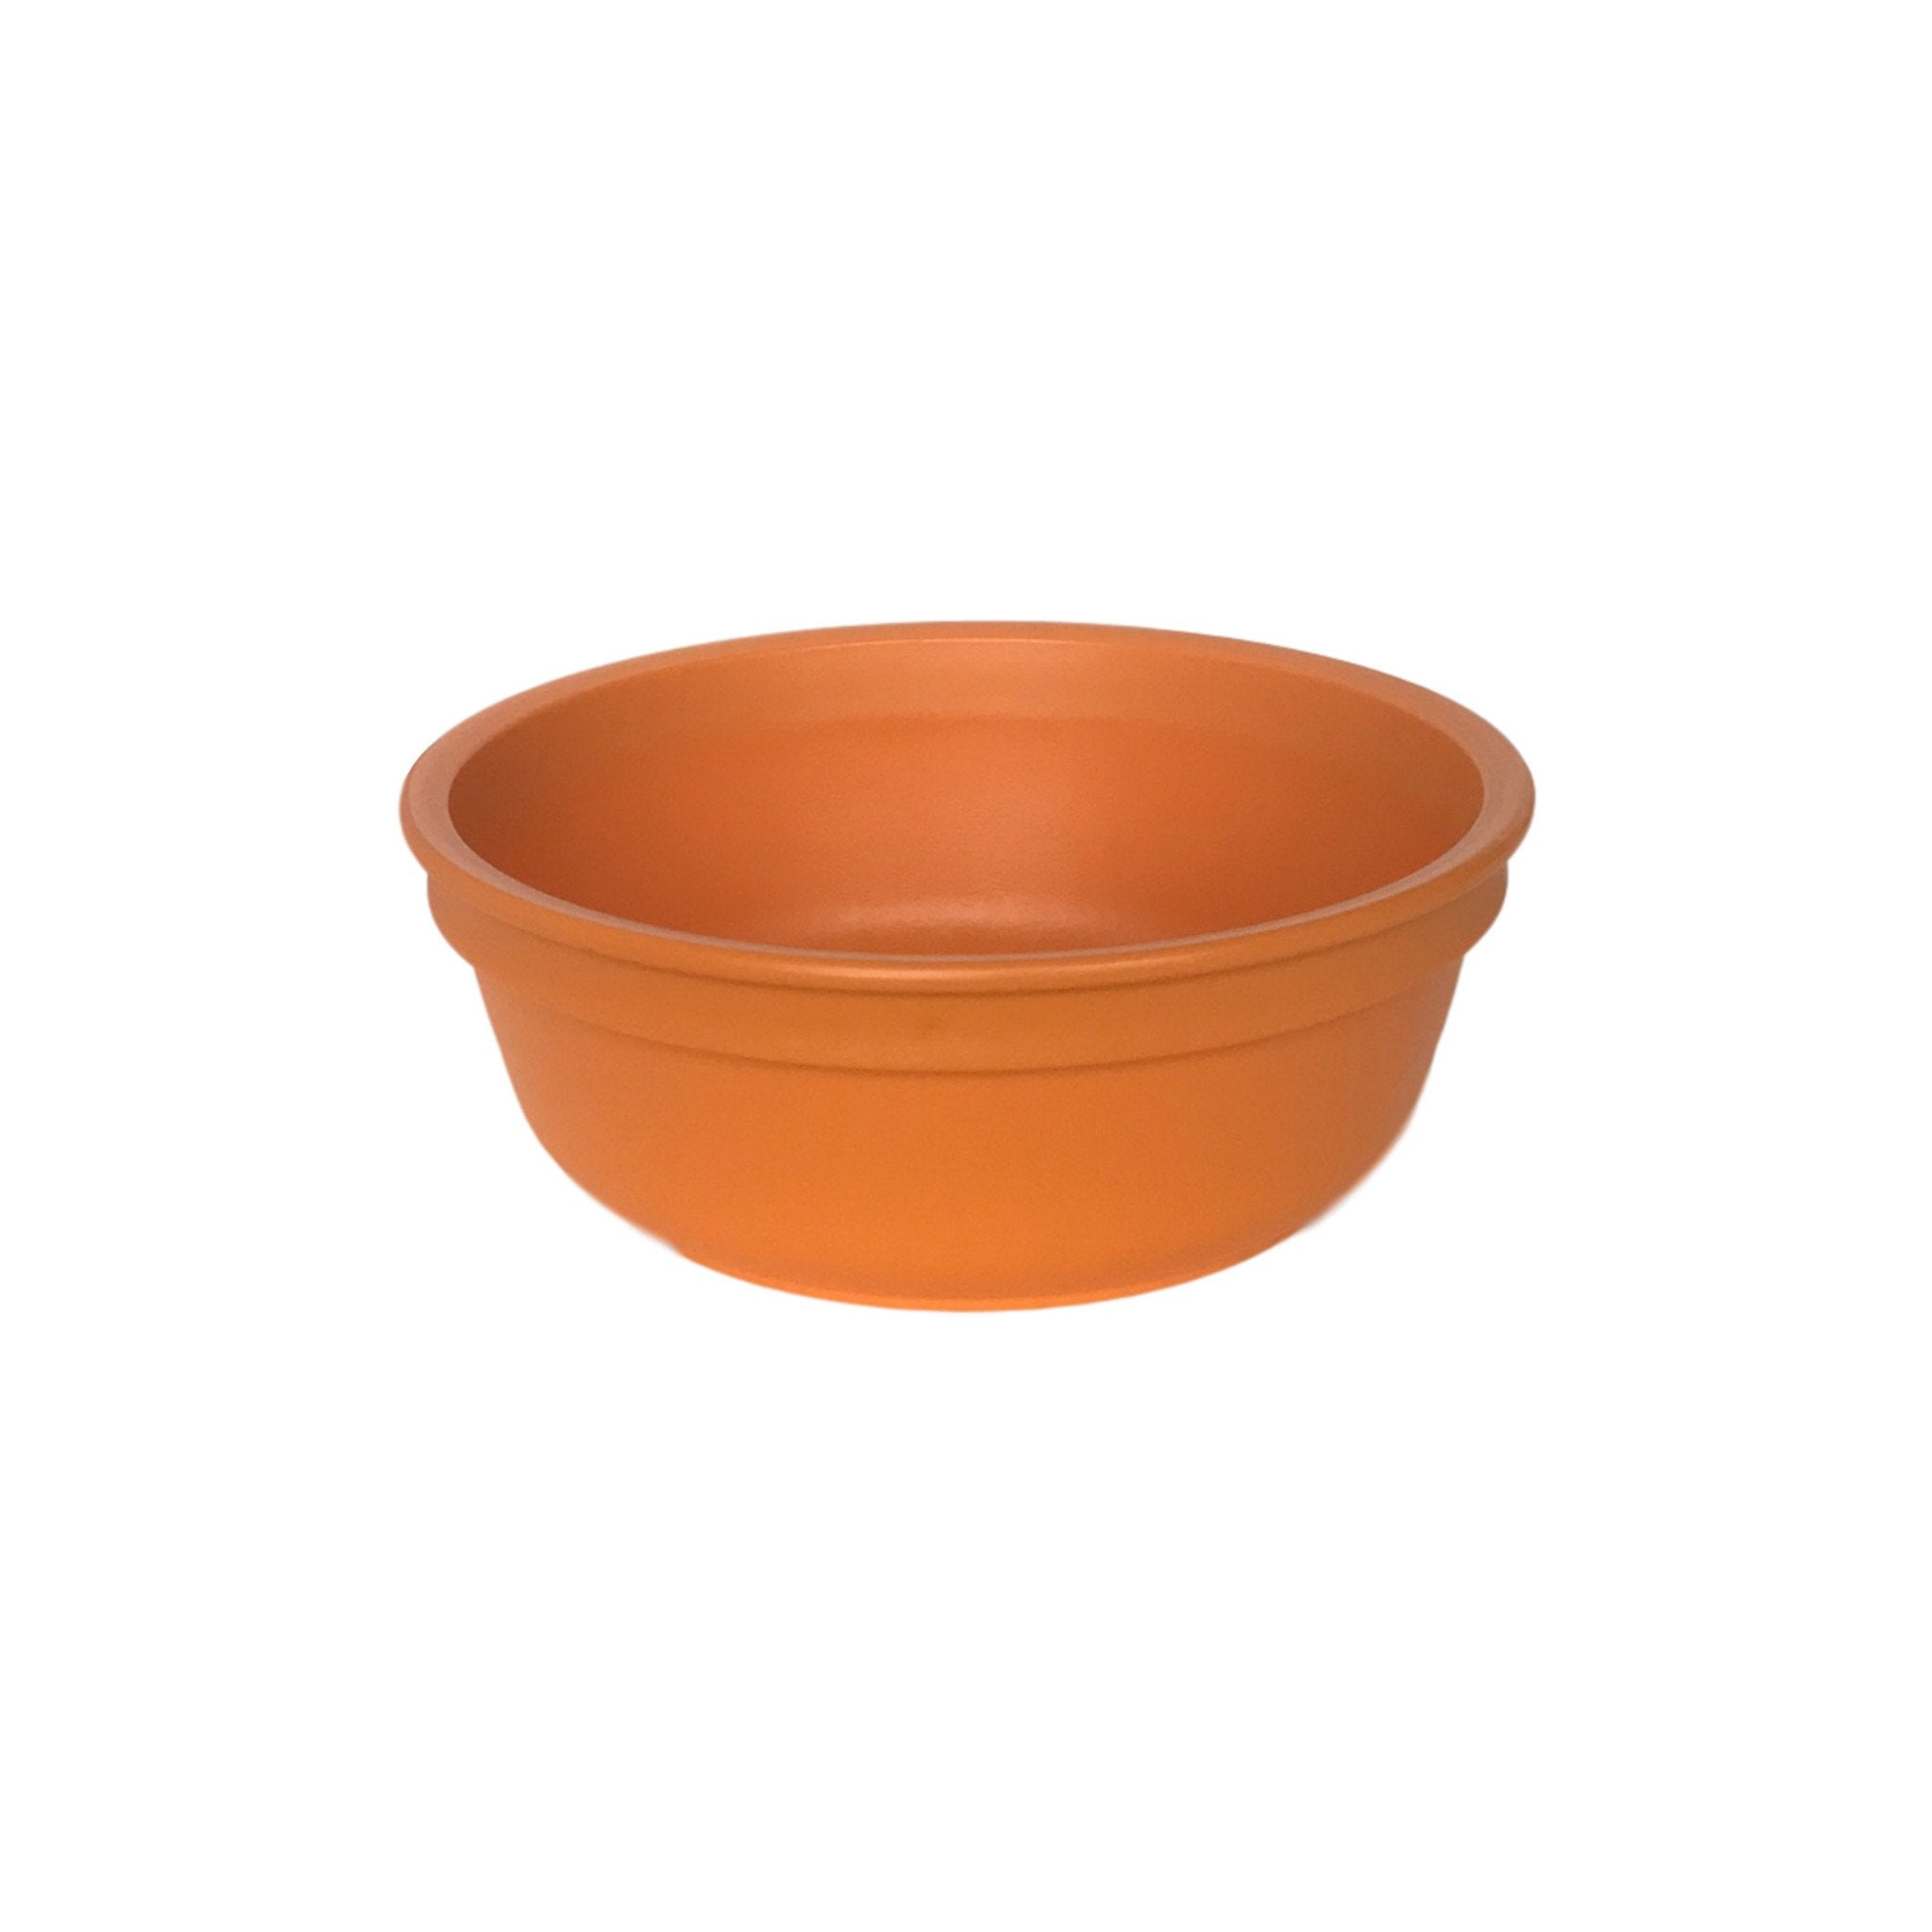 Replay Bowl Replay Lifestyle Orange at Little Earth Nest Eco Shop